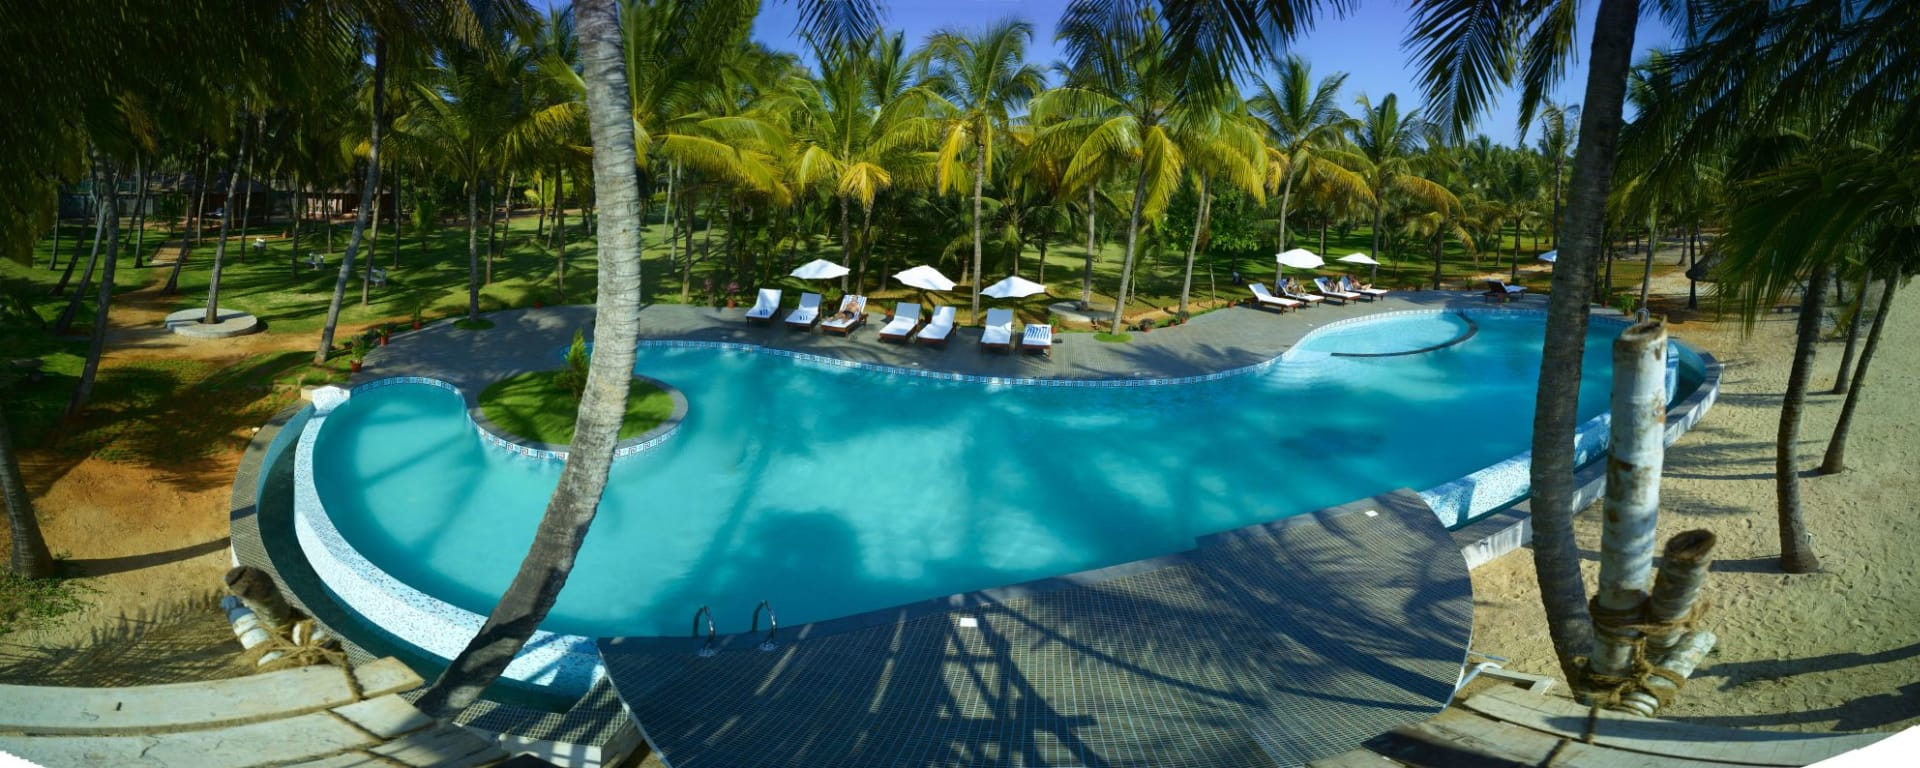 Nattika Beach Ayurveda Resort in Kochi: Pool